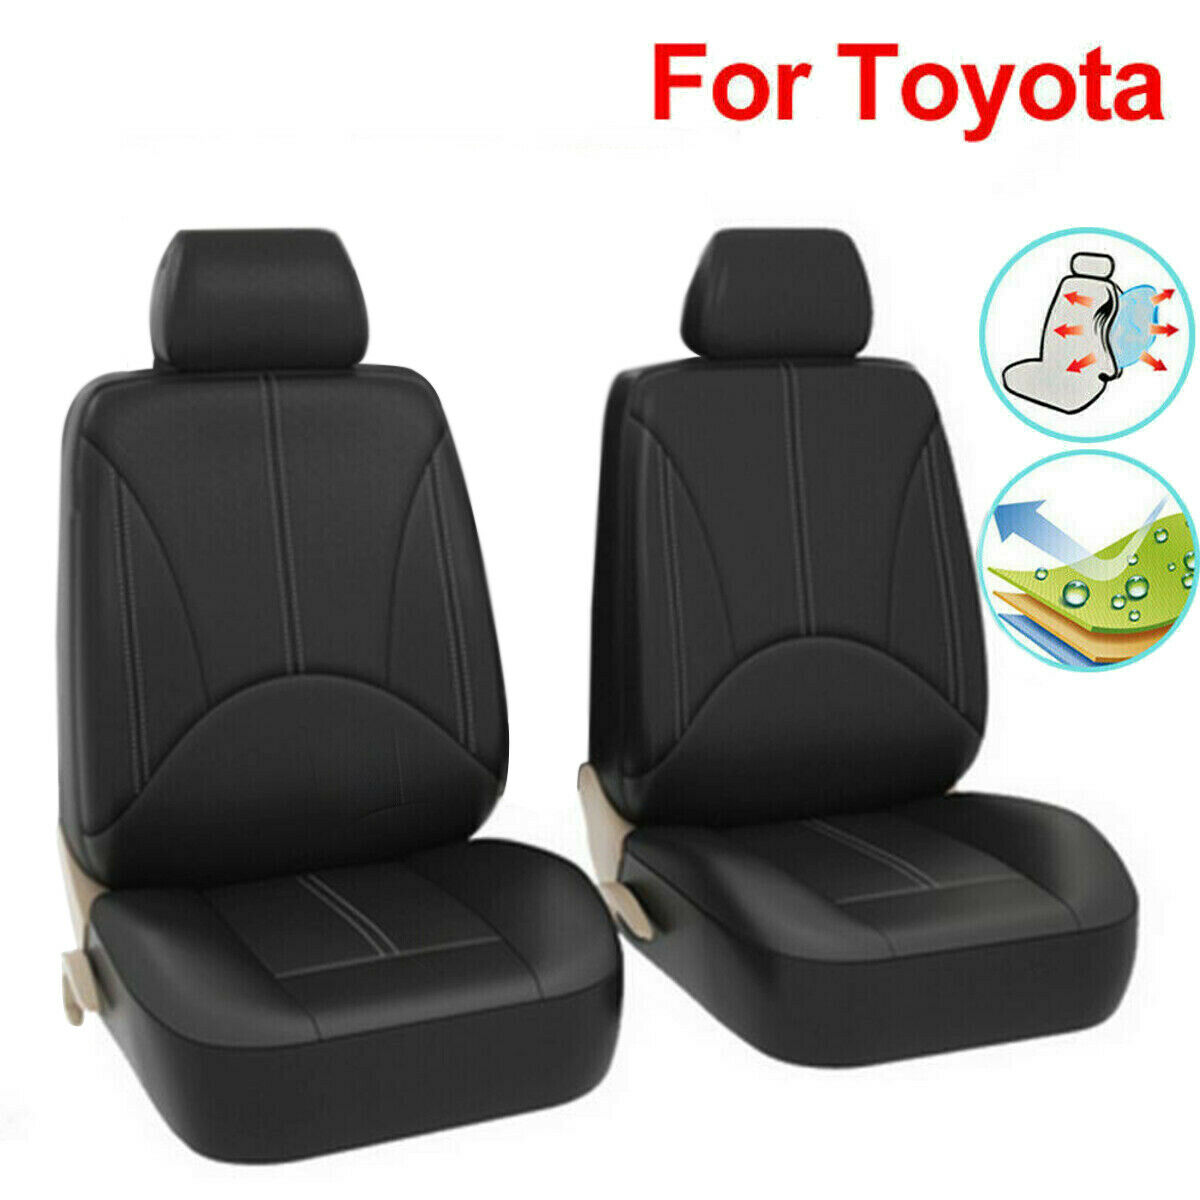 4/9pcs/Set Black PU Leather Seat Cover Waterproof Fit For Toyota RAV4 4runner Interior Parts Accessories